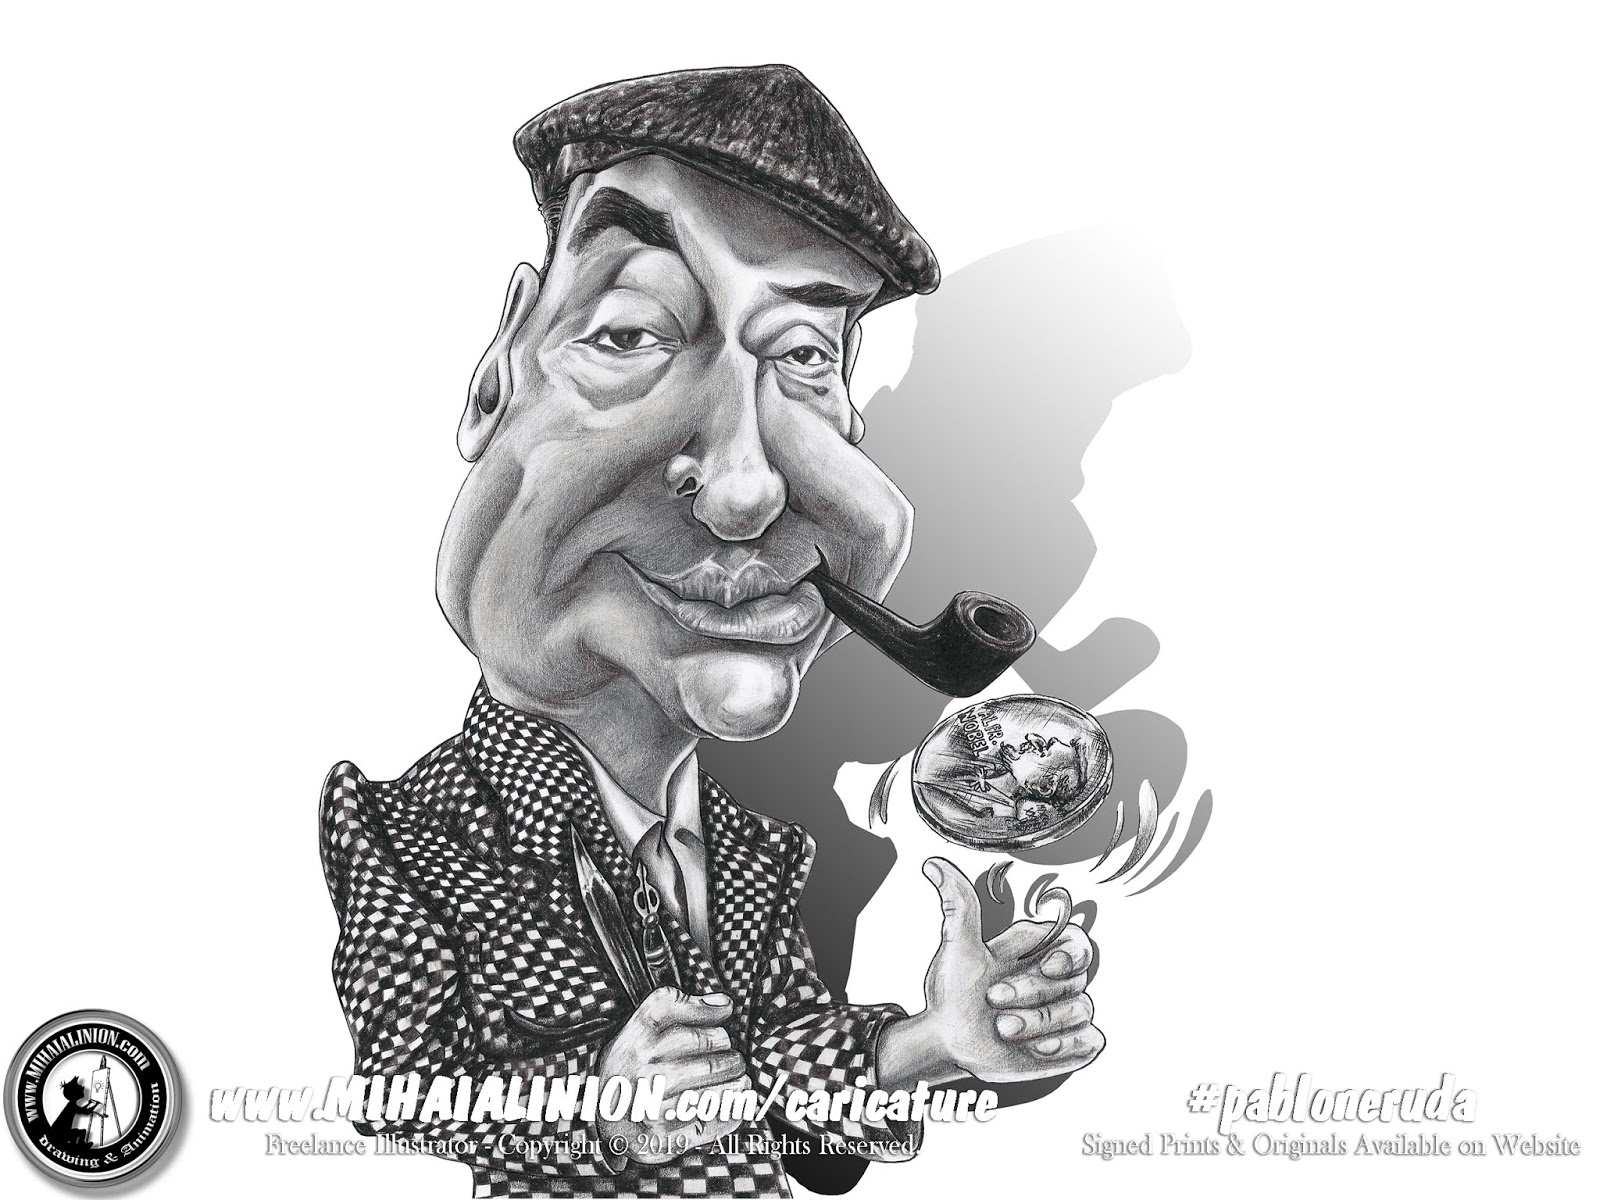 Drawing Pablo Neruda, promarkers, caricature Illustration, drawing caricature, pencil drawing, how to draw caricature, art illustrated, mihai alin ion comics, matei alexandru ion, Drawing with Matei, Matei Draws, creioane colorate, writter, l writter pablo neruda, literature caricature, pablo neruda caricature, illustrations by mihai alin ion, painting, Nobel caricature, MAI Comics, Mihai Alin Ion, art by mihai alin ion, how to draw, artselfie, drawing ideas, free drawing lessons, drawing tutorial, art, dessin, disegno, dibujo, drawing for kids, drawing, illustration, painting, design, realistic 3d art, coloured pencils, www.mihaialinion.com, 2019, pencil drawing, tempera, acrilics paint, marker, gouache painting, mixed media, comics, comic book, caricature, portrait, cum sa desenezi, caricaturi mihai alin ion, caricaturi si portrete  la comanda, eveniment caricaturi, caricaturi la nunta, caricaturi la botez, caricaturi la majorat, desene pe pereti, desene pentru copii, ilustratie carte, benzi desenate, caricaturi, portrete, comanda caricaturi